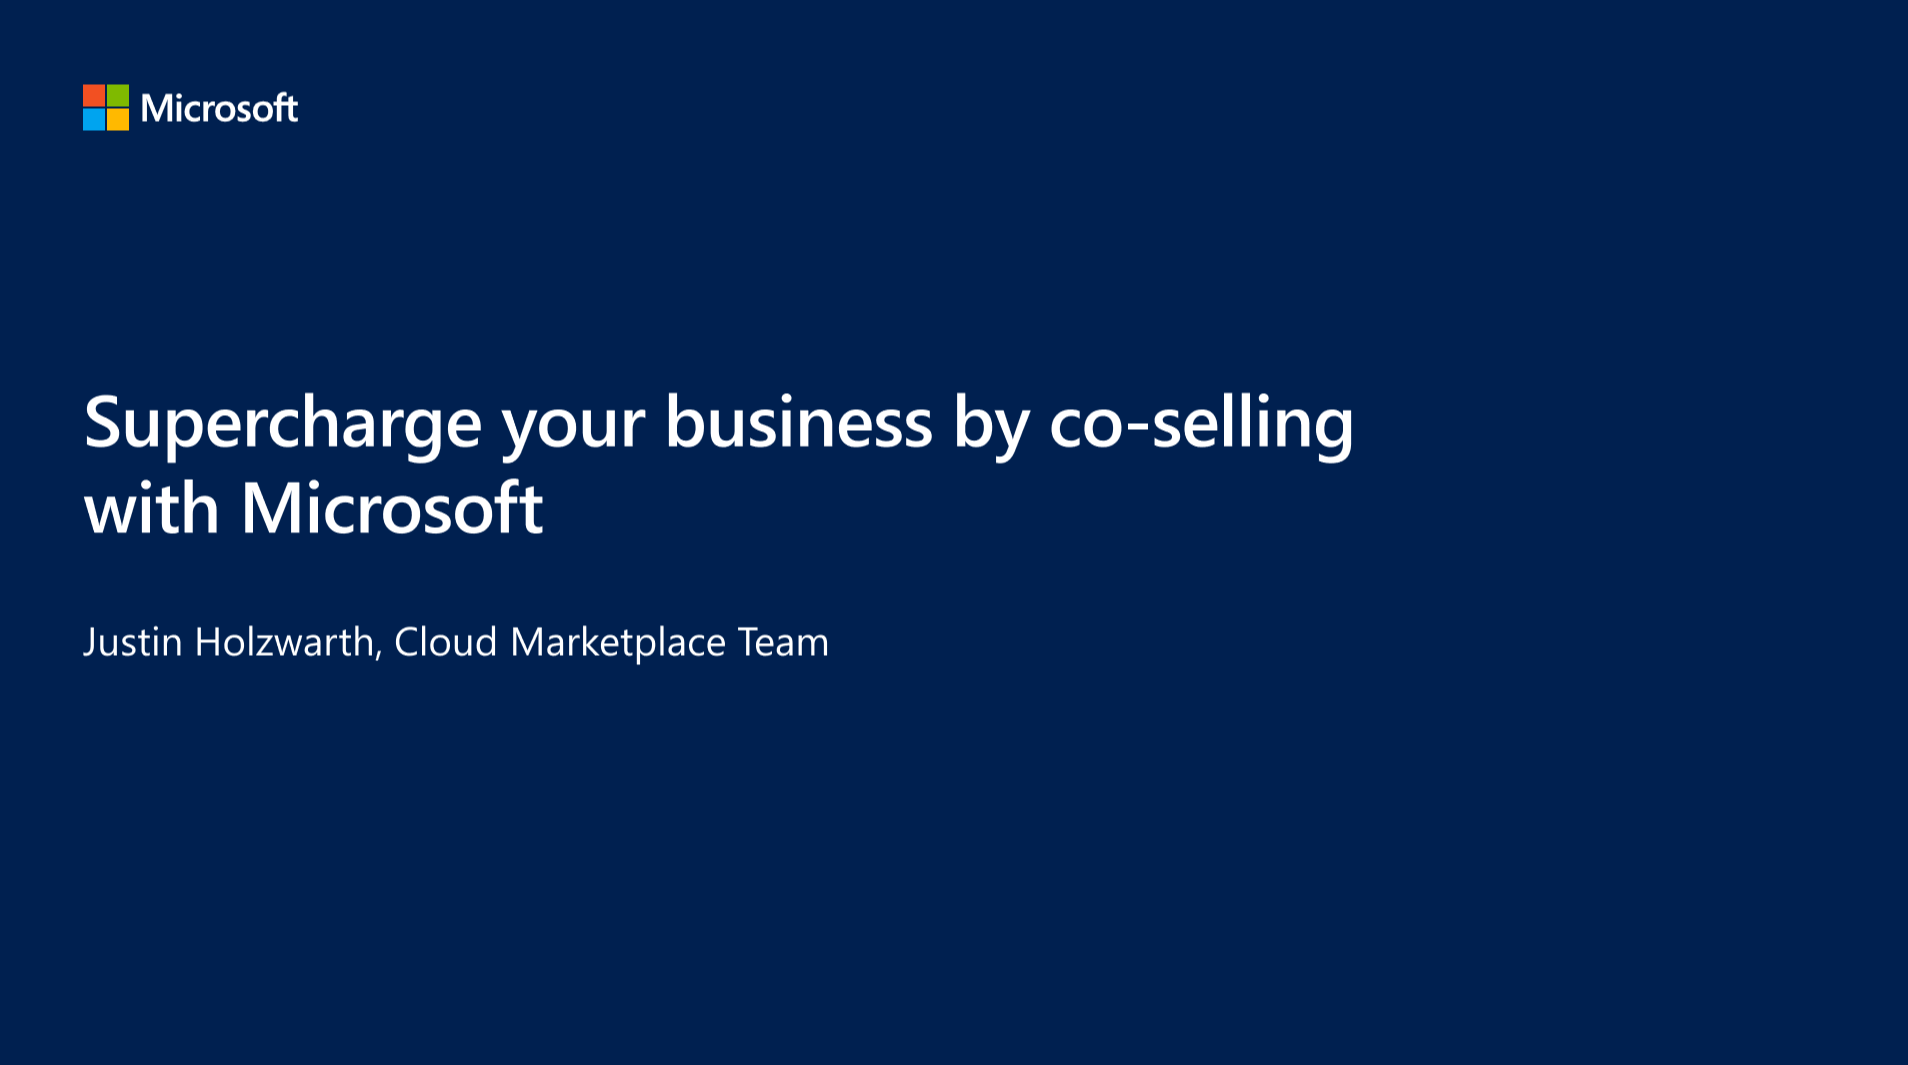 Supercharge Your Business by Co-Selling with Microsoft